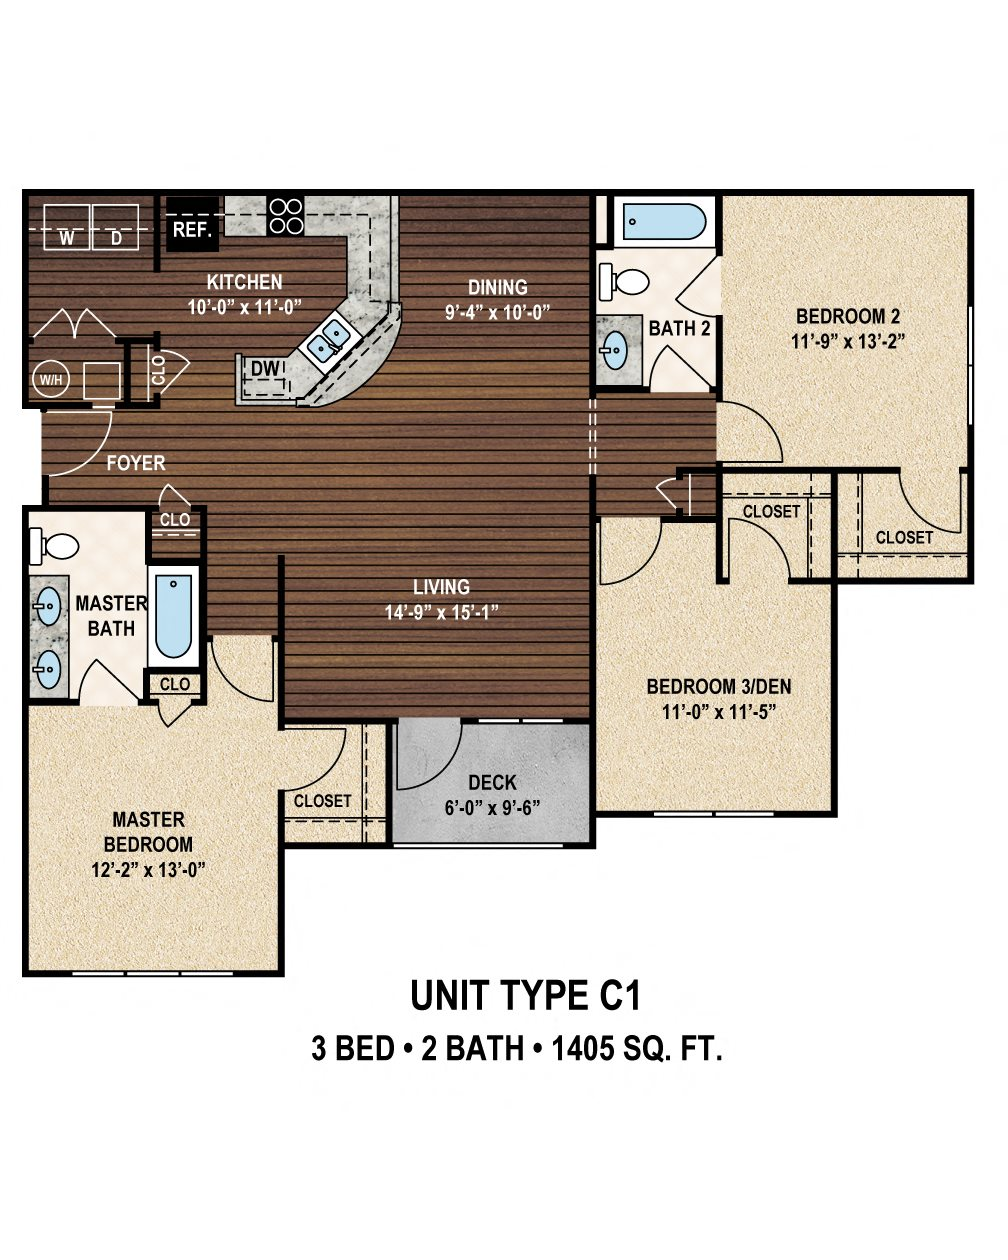 Luxury 1, 2 & 3 Bedroom Apartments In Columbia, SC